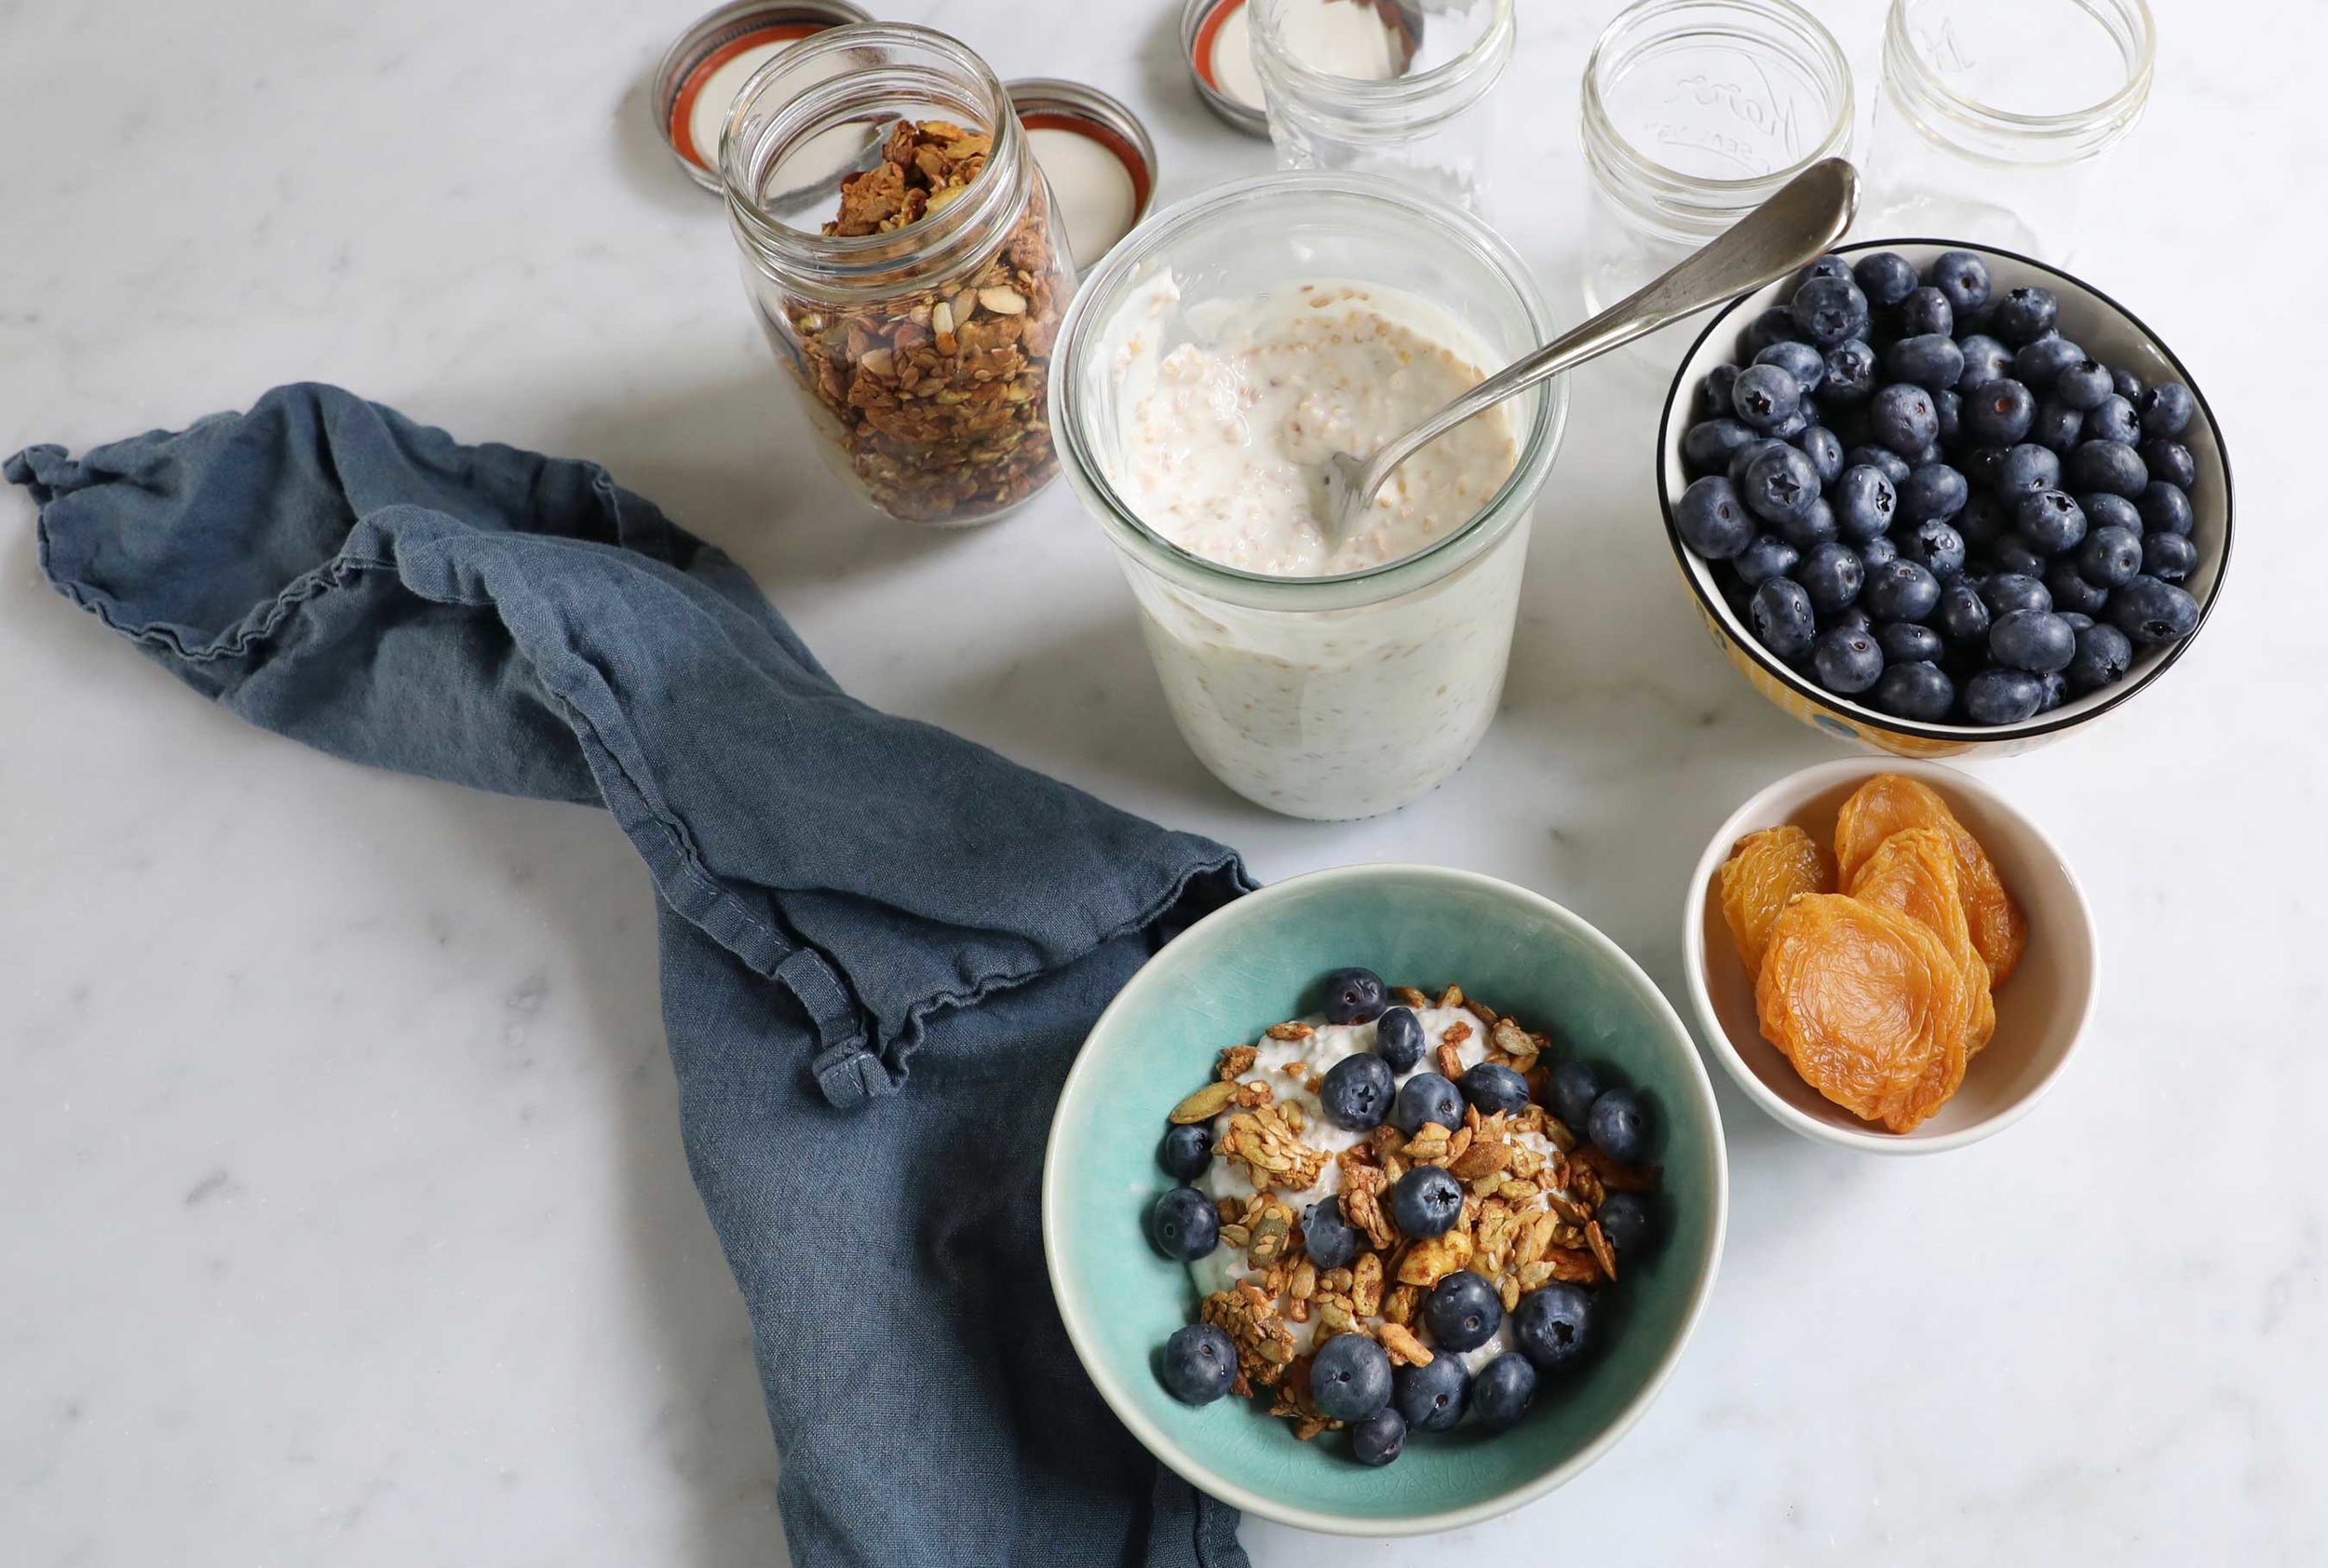 Nothing is better than someone making breakfast for you. But sometimes, that someone has to be you. Set yourself up for the week by prepping your breakfast on Sunday night. You will be glad you did.